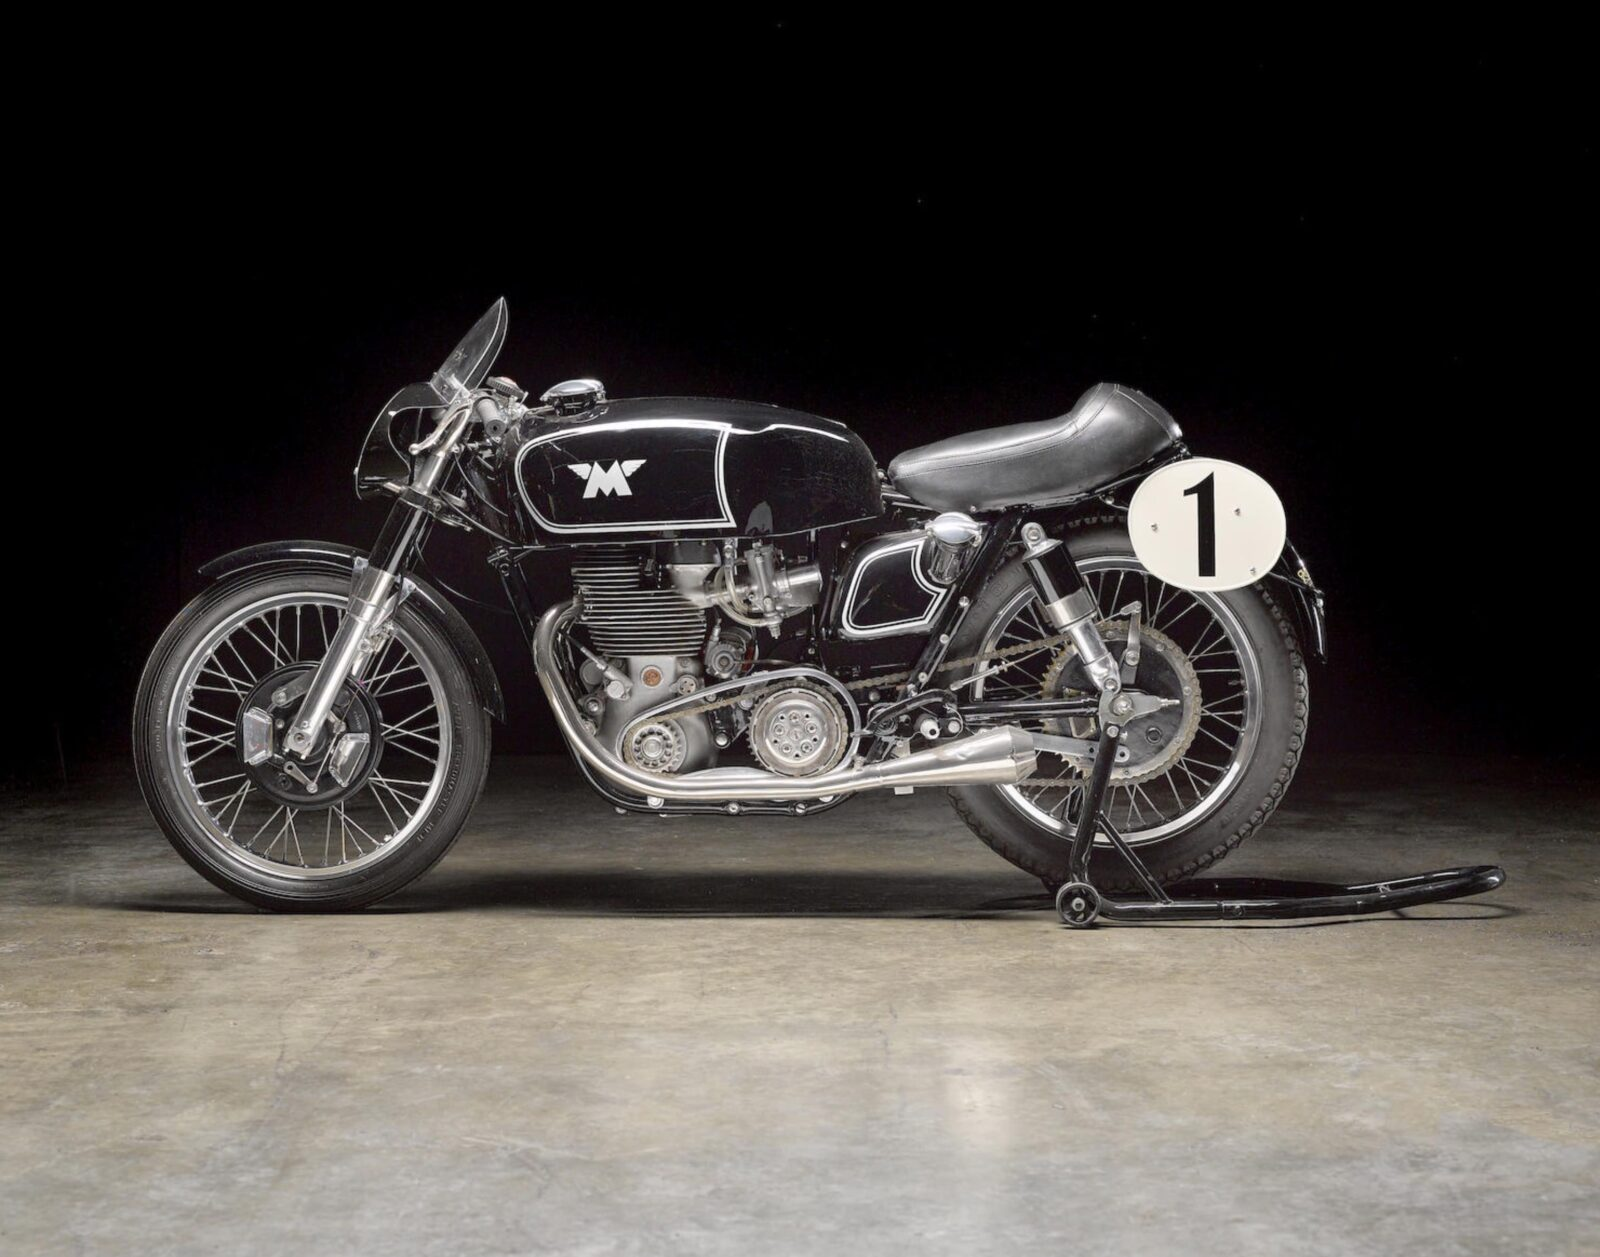 Matchless G45 2 1600x1257 - 1955 Matchless G45 Racer